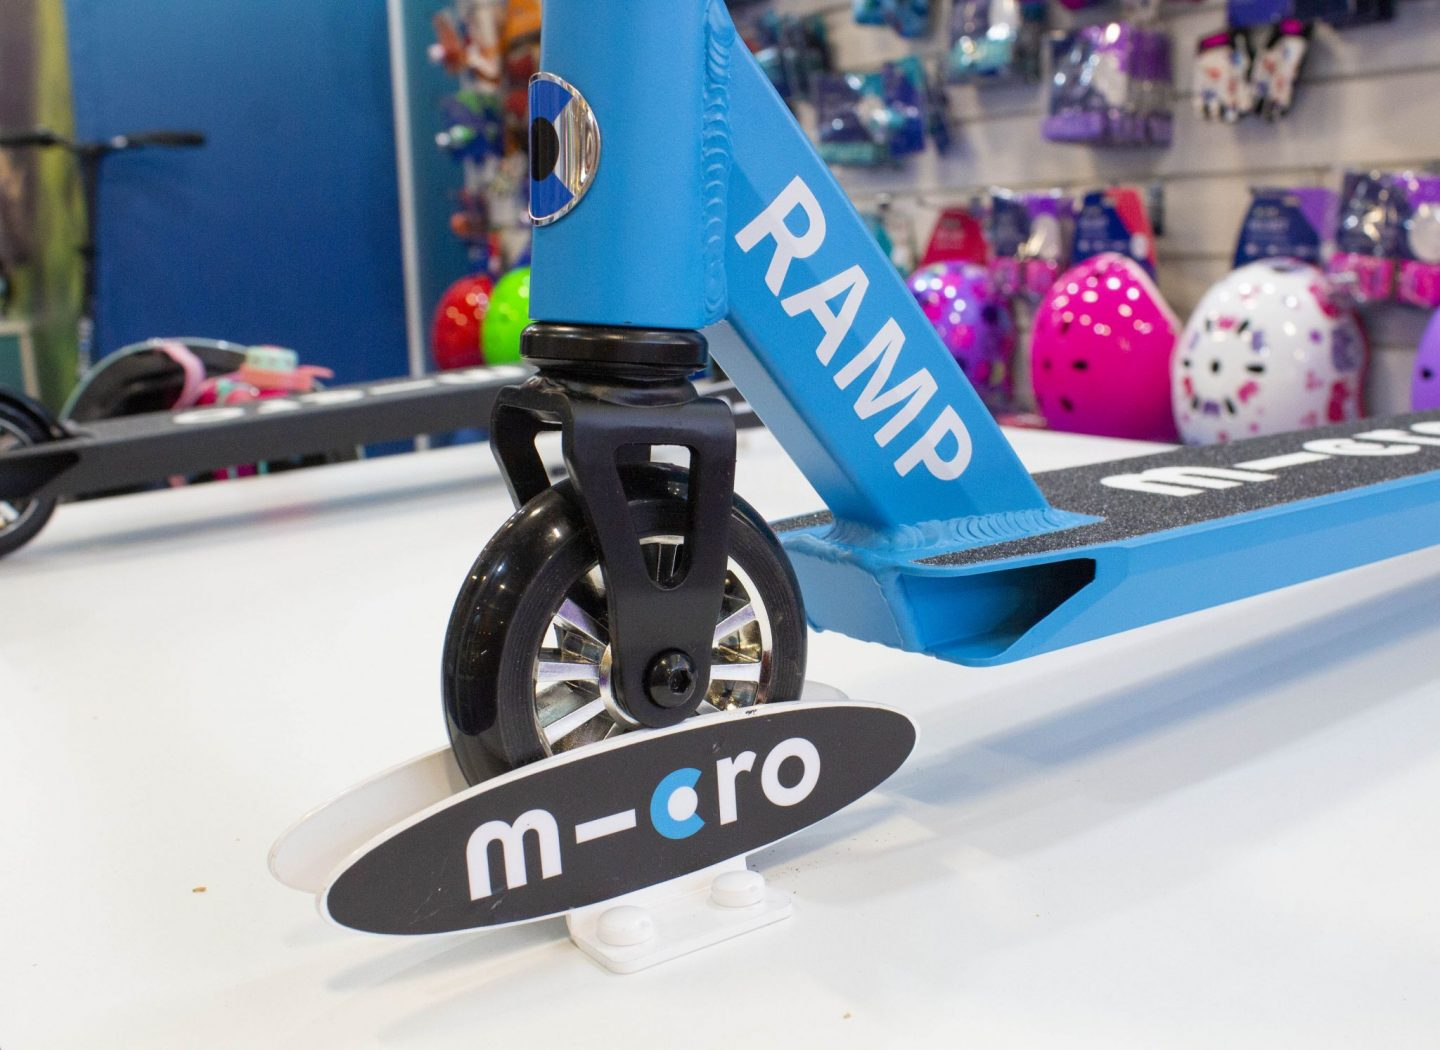 Stunt scooter, The Toy Fair, Toy Fair 2019, The Toy Fair 2019, Microscooters, dadbloguk, dad blog uk, dadbloguk.com, school run dad, sahd, wahd toys, gifts